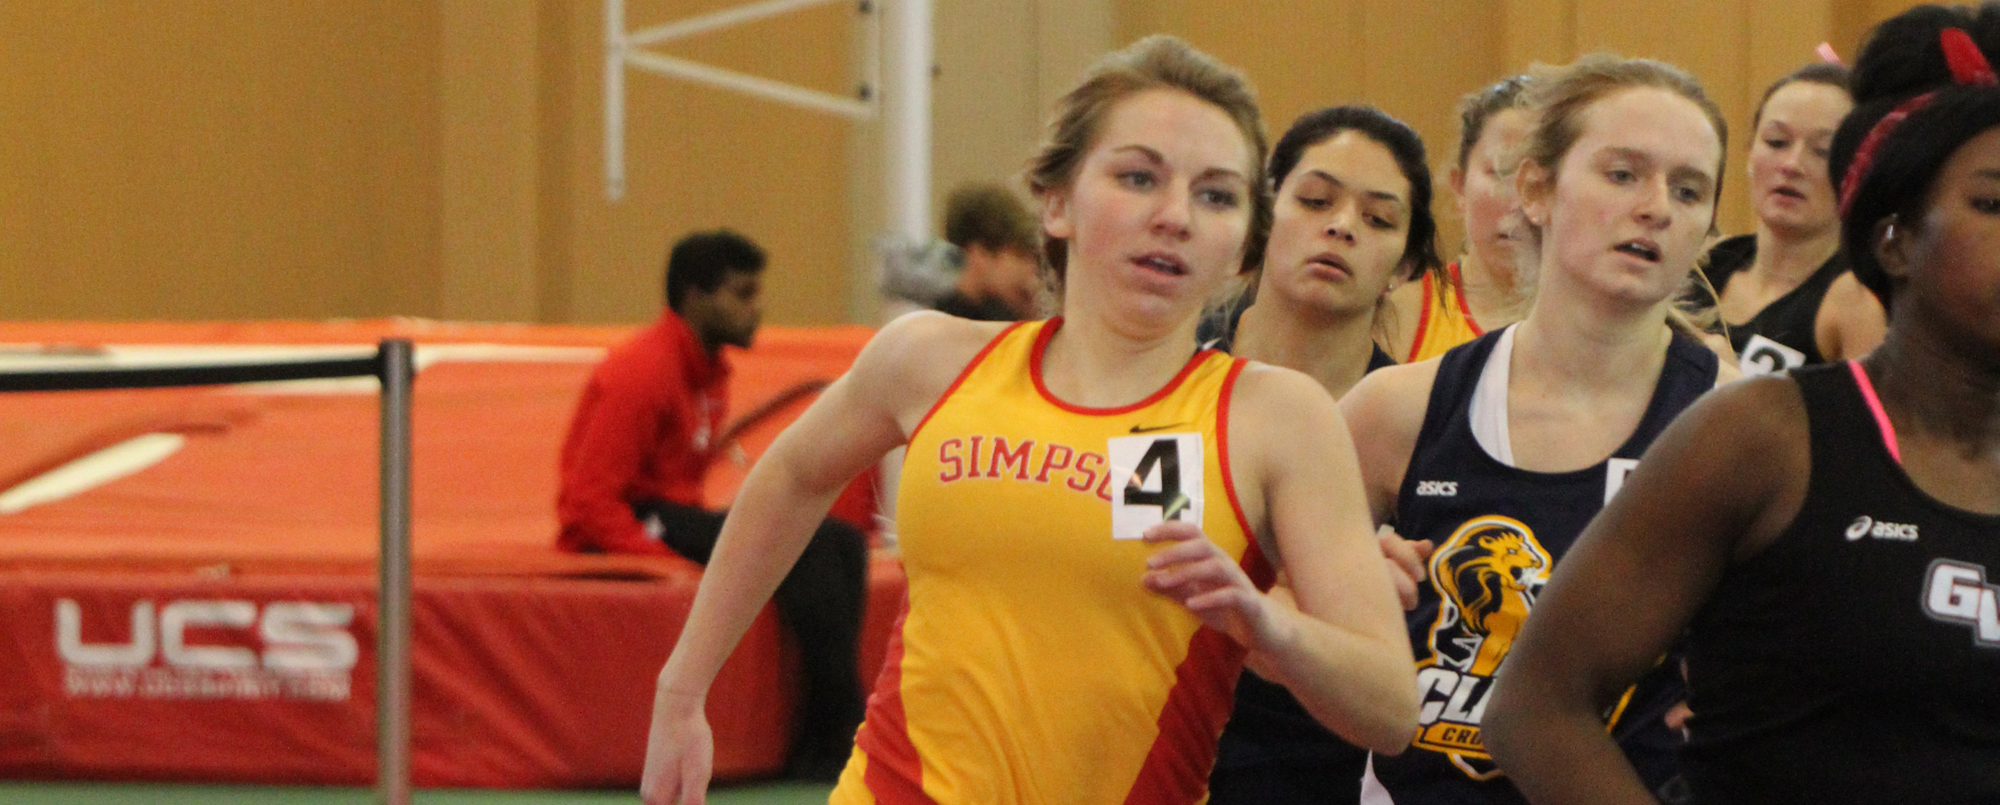 Courtney Neuendorf ran to a sixth-place finish in the 3,000-meter run at the Nebraska Wesleyan Invitational on Friday, Jan. 20.